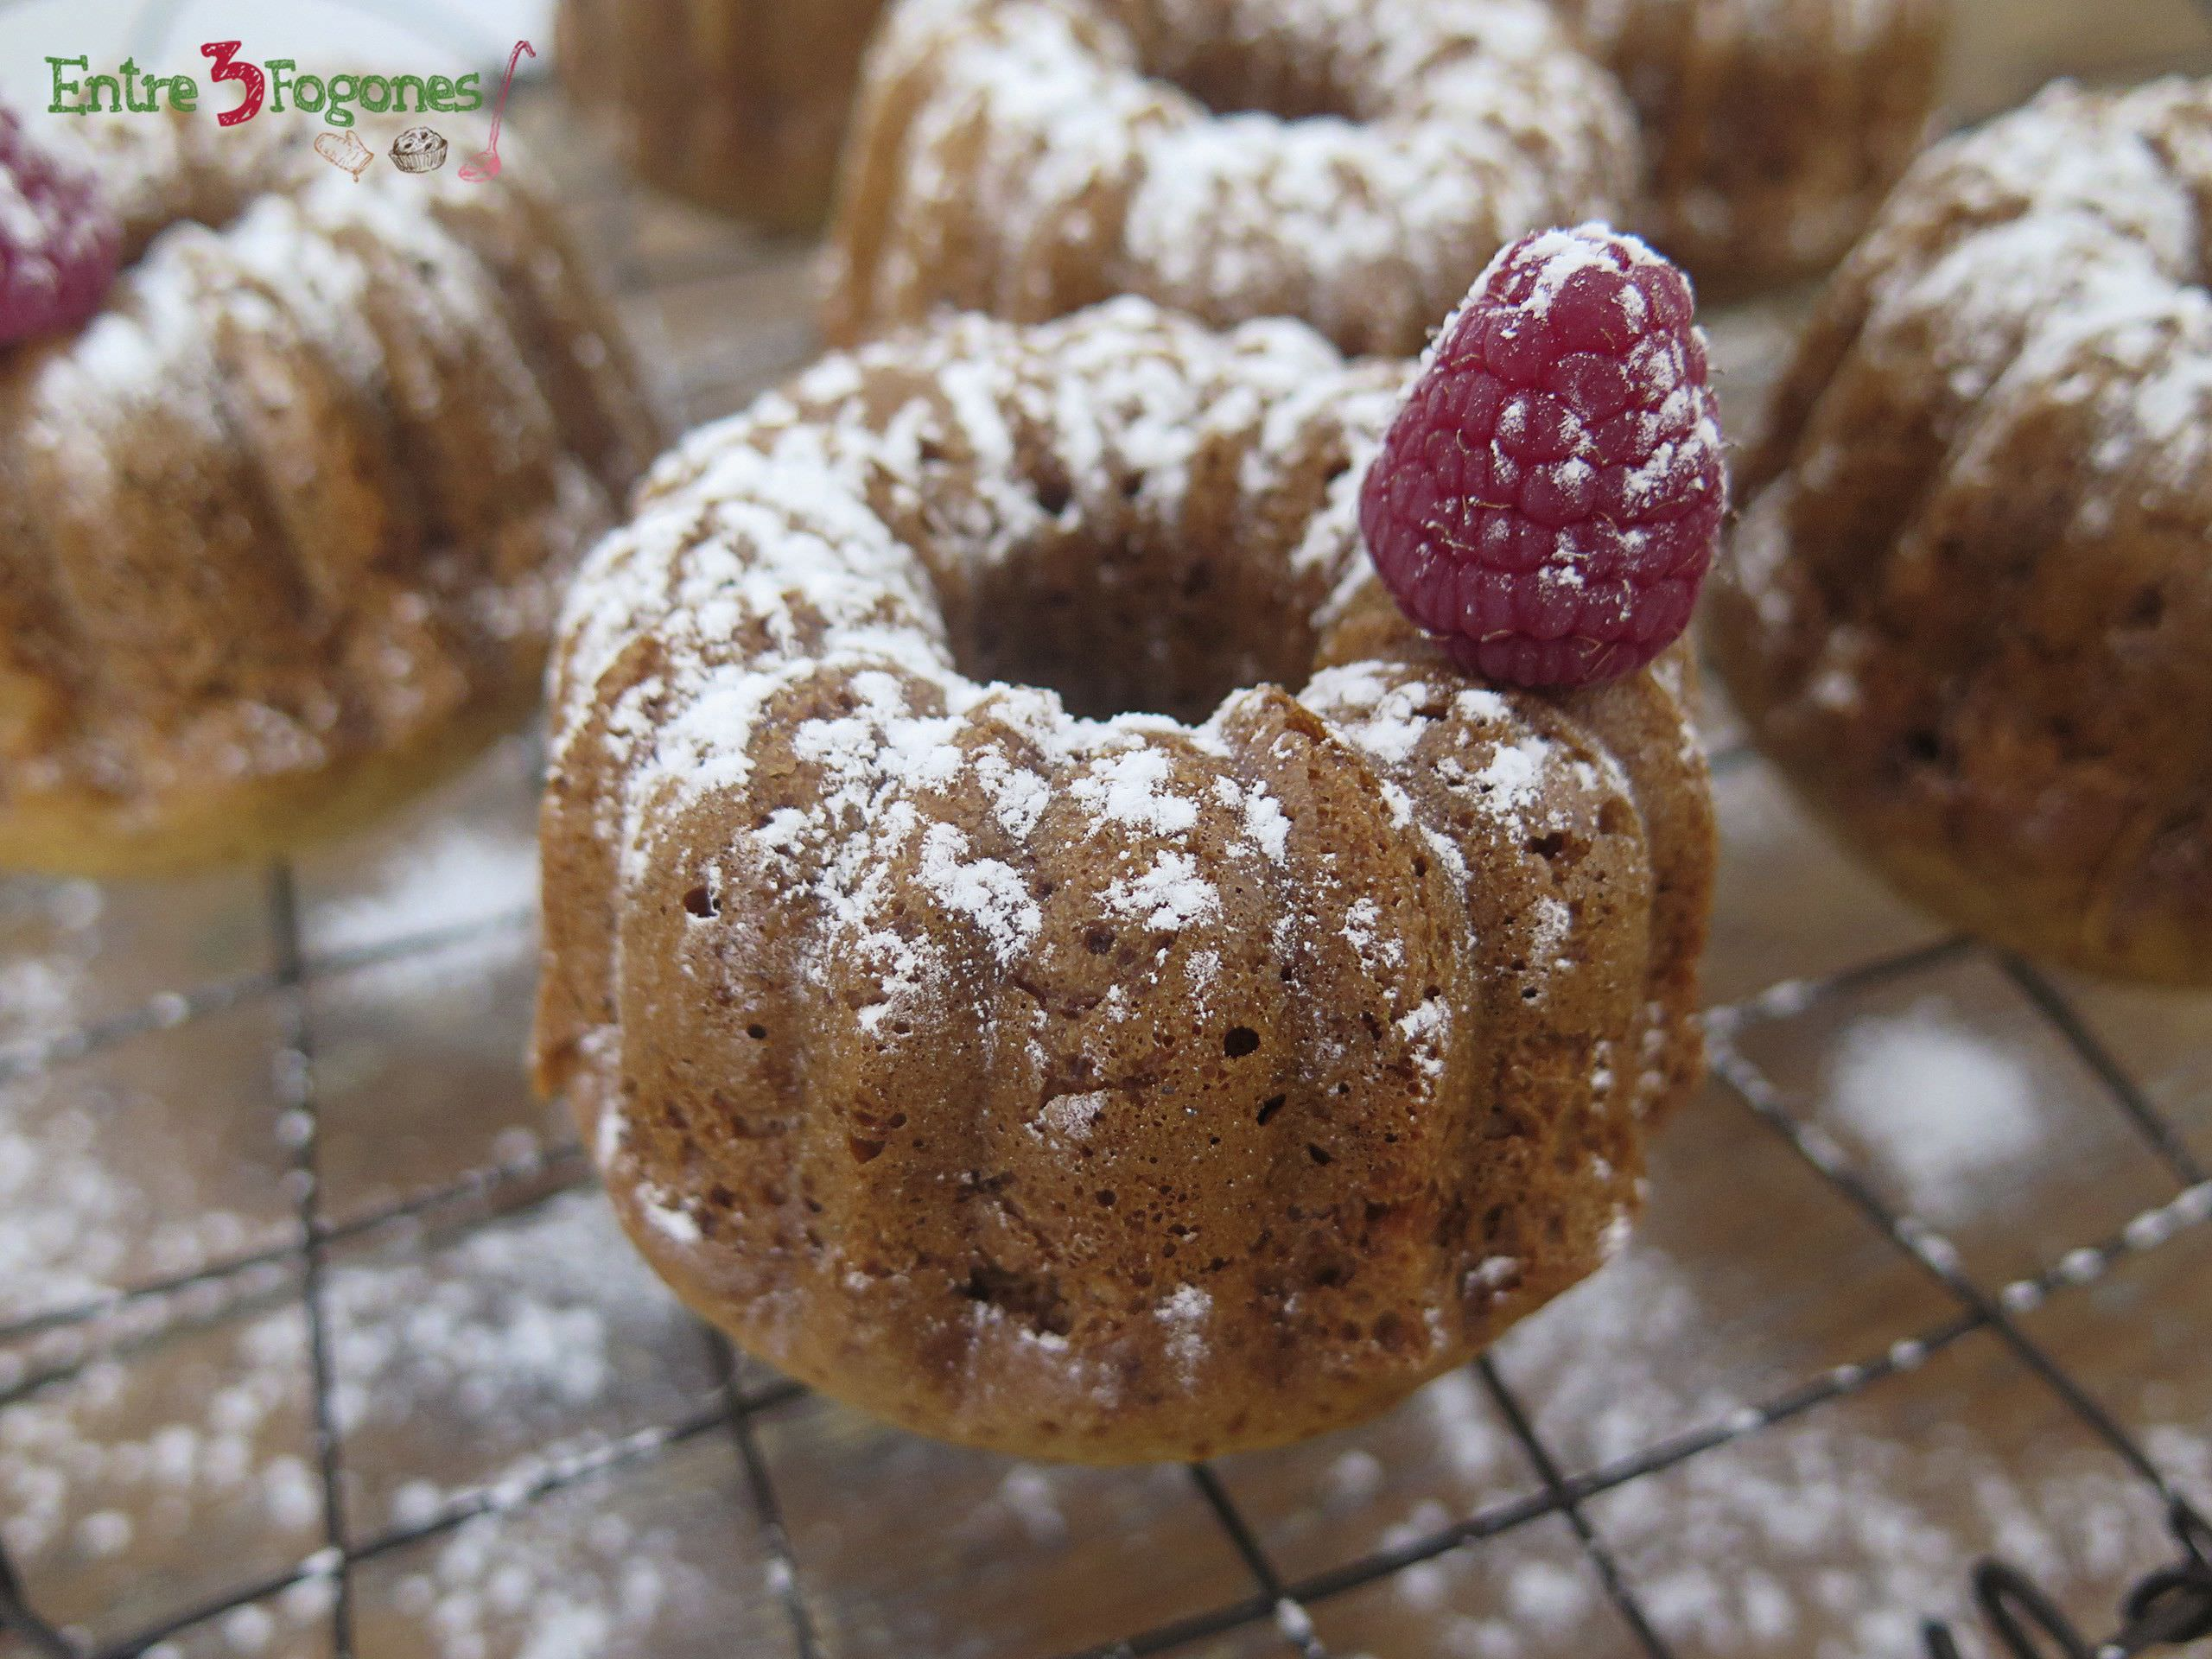 Photo of Mini Bundt Cakes de Avellanas y Toffee con Frambuesa